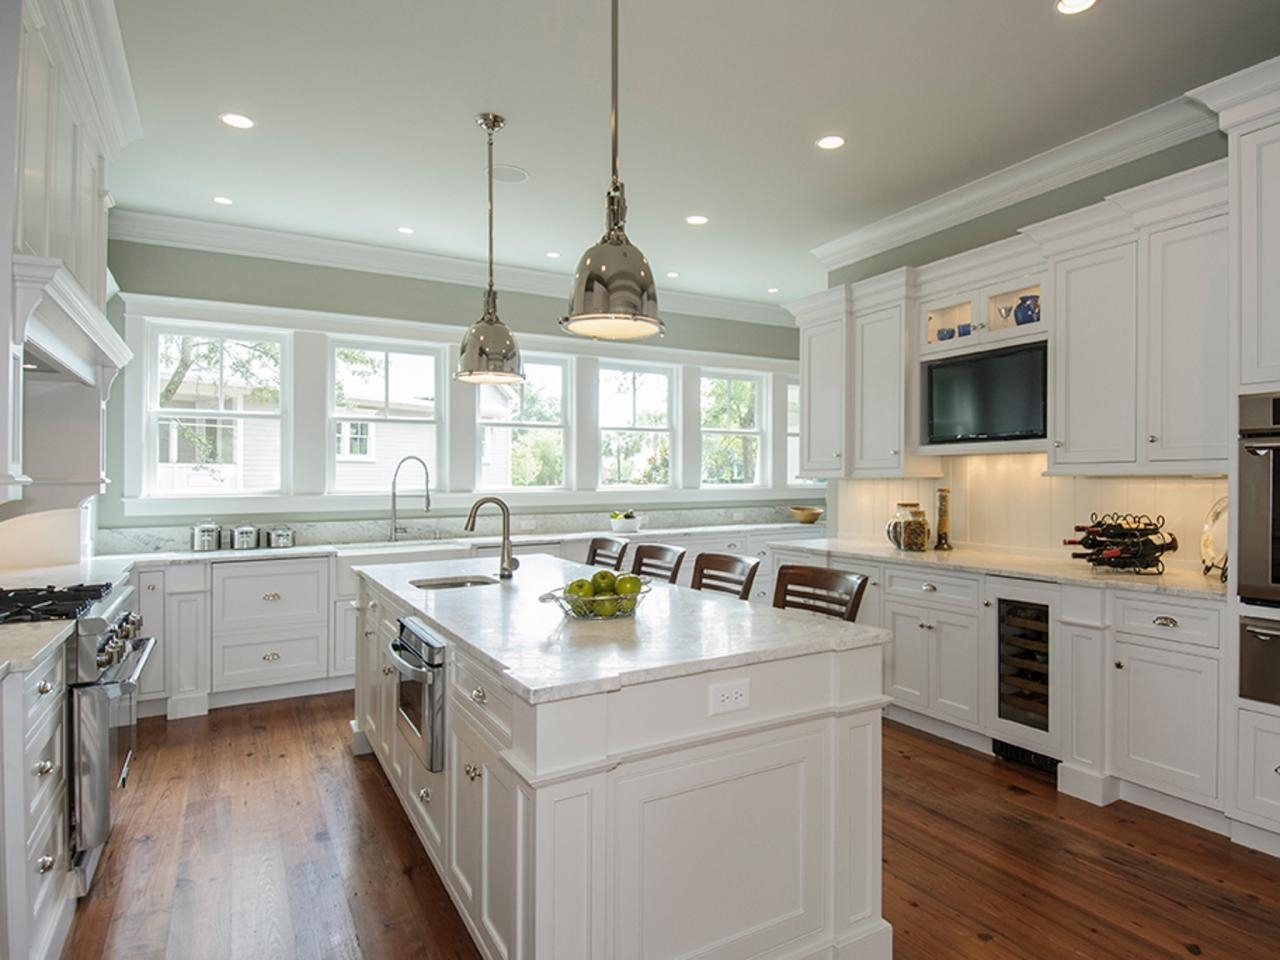 10 Pretty Kitchen Paint Ideas With White Cabinets %name 2020